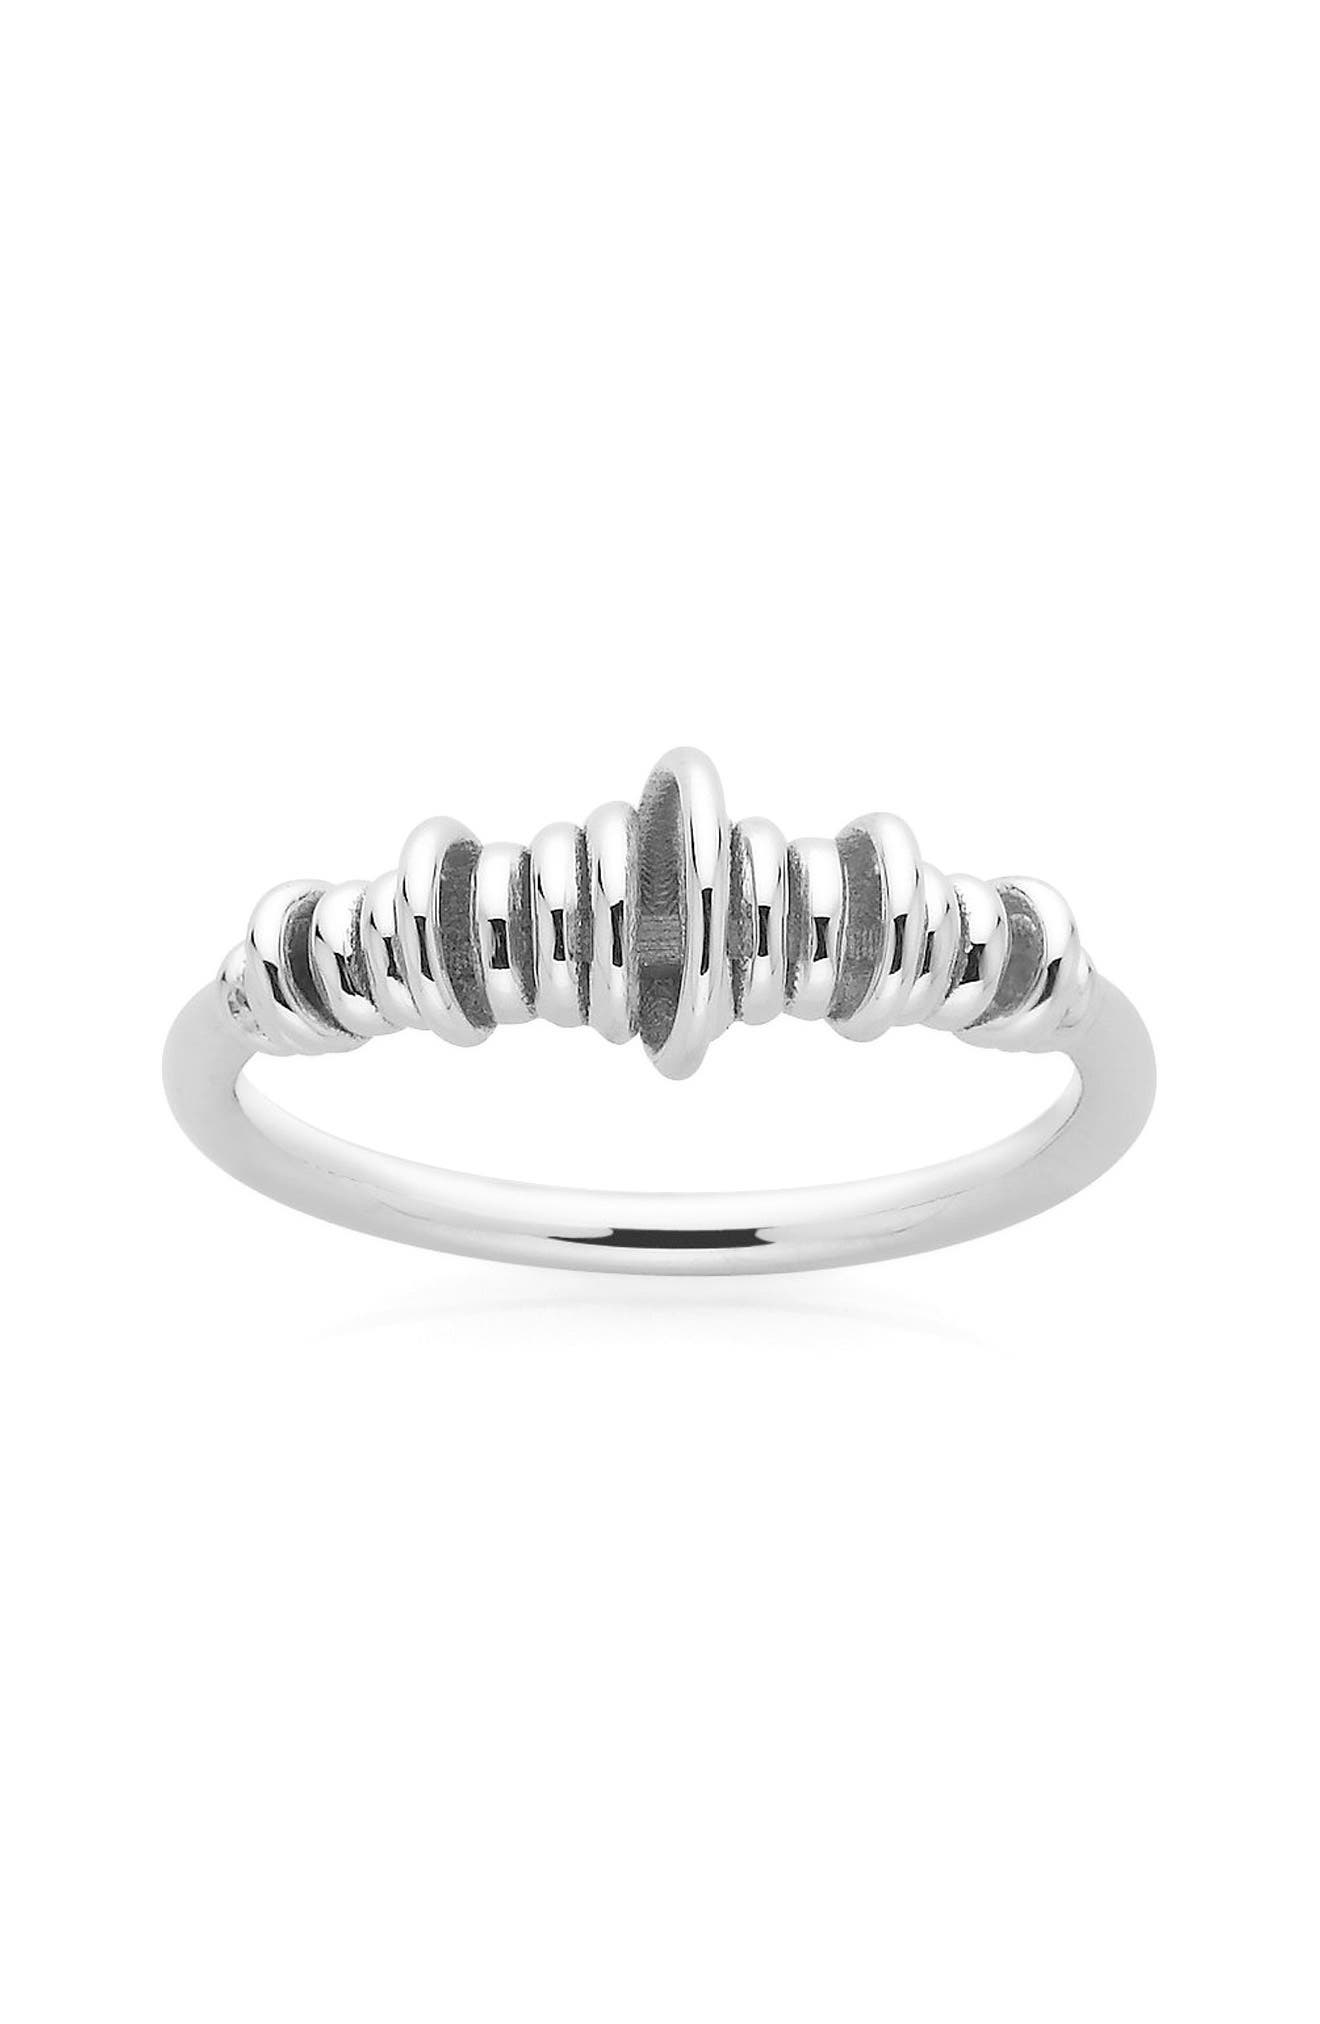 Revival Ring,                         Main,                         color, STERLING SILVER